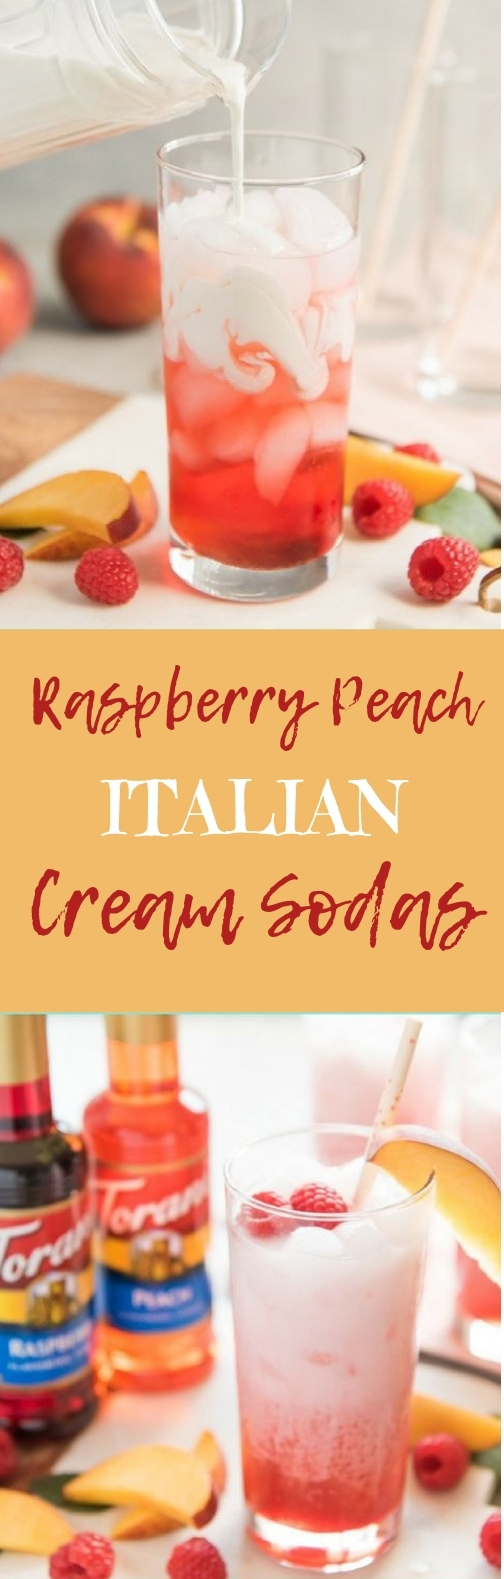 Raspberry Peach Italian Cream Sodas #drinks #deliciousrecipe